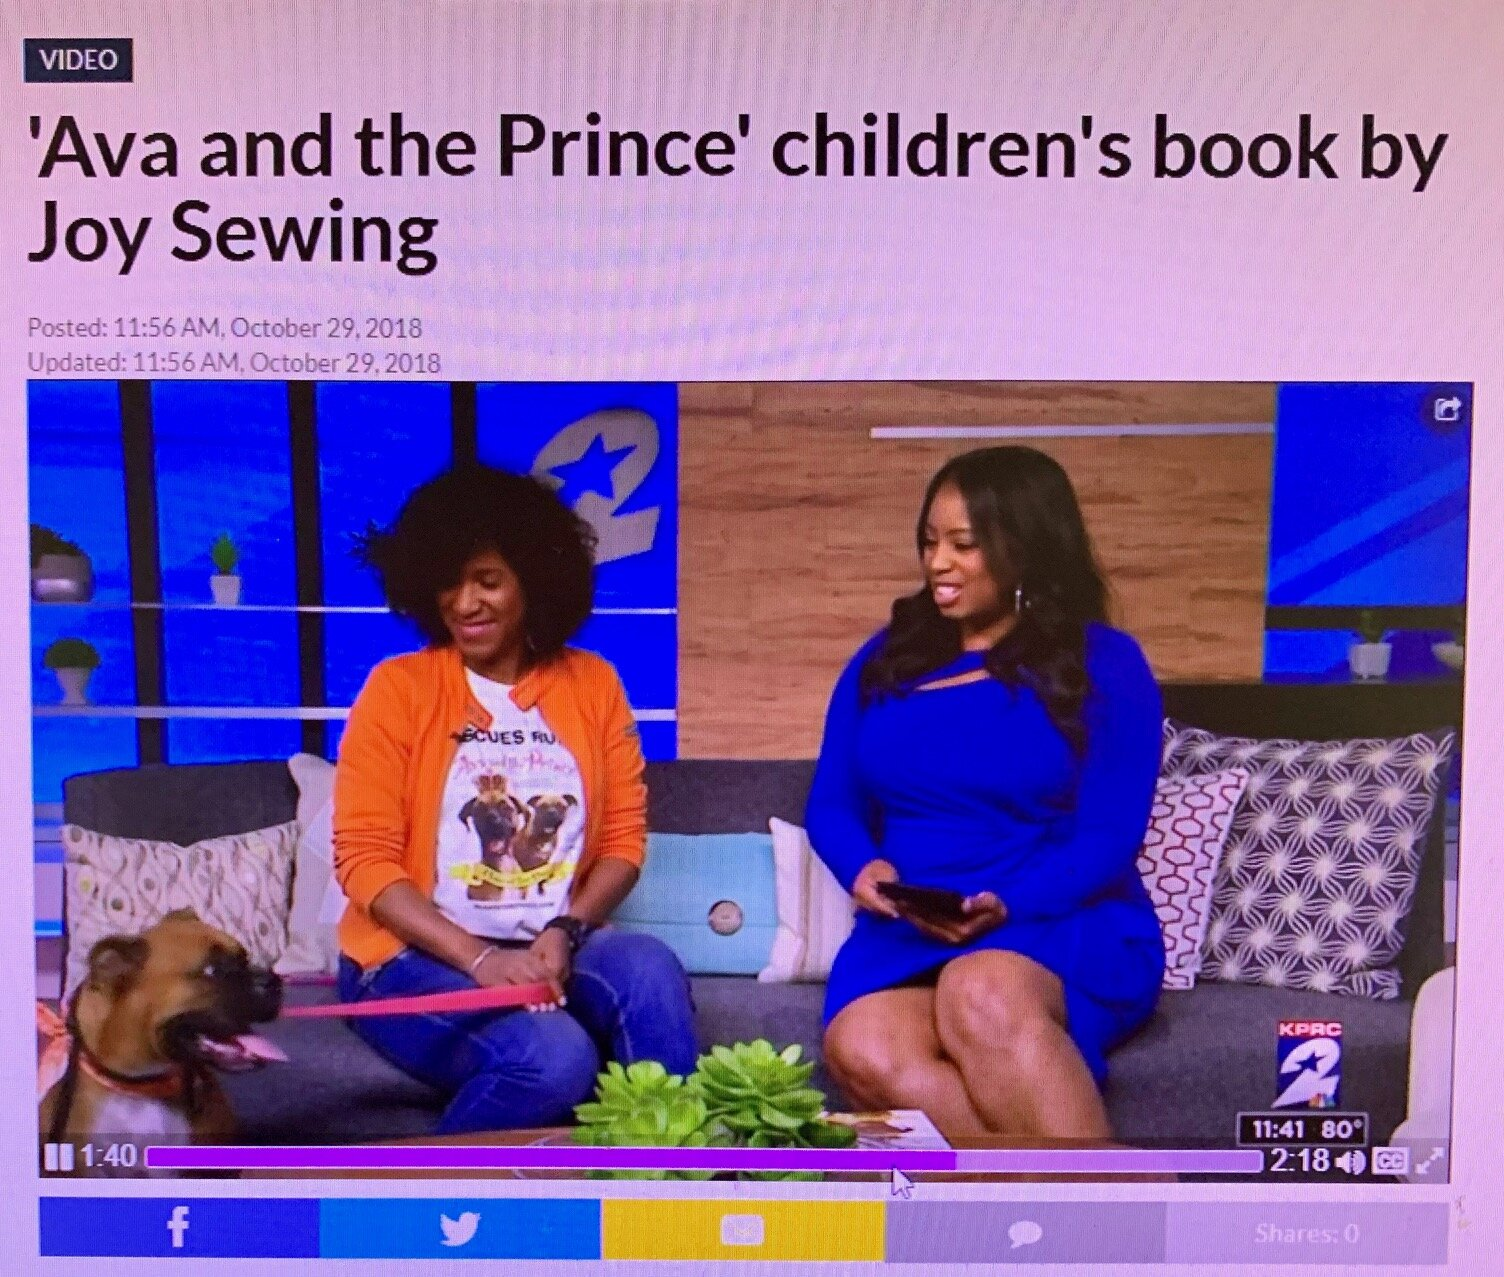 We appeared on KPRC Local 2. Click here to see the segment:  https://www.click2houston.com/'ava-and-the-prince'-children's-book-by-joy-sewing